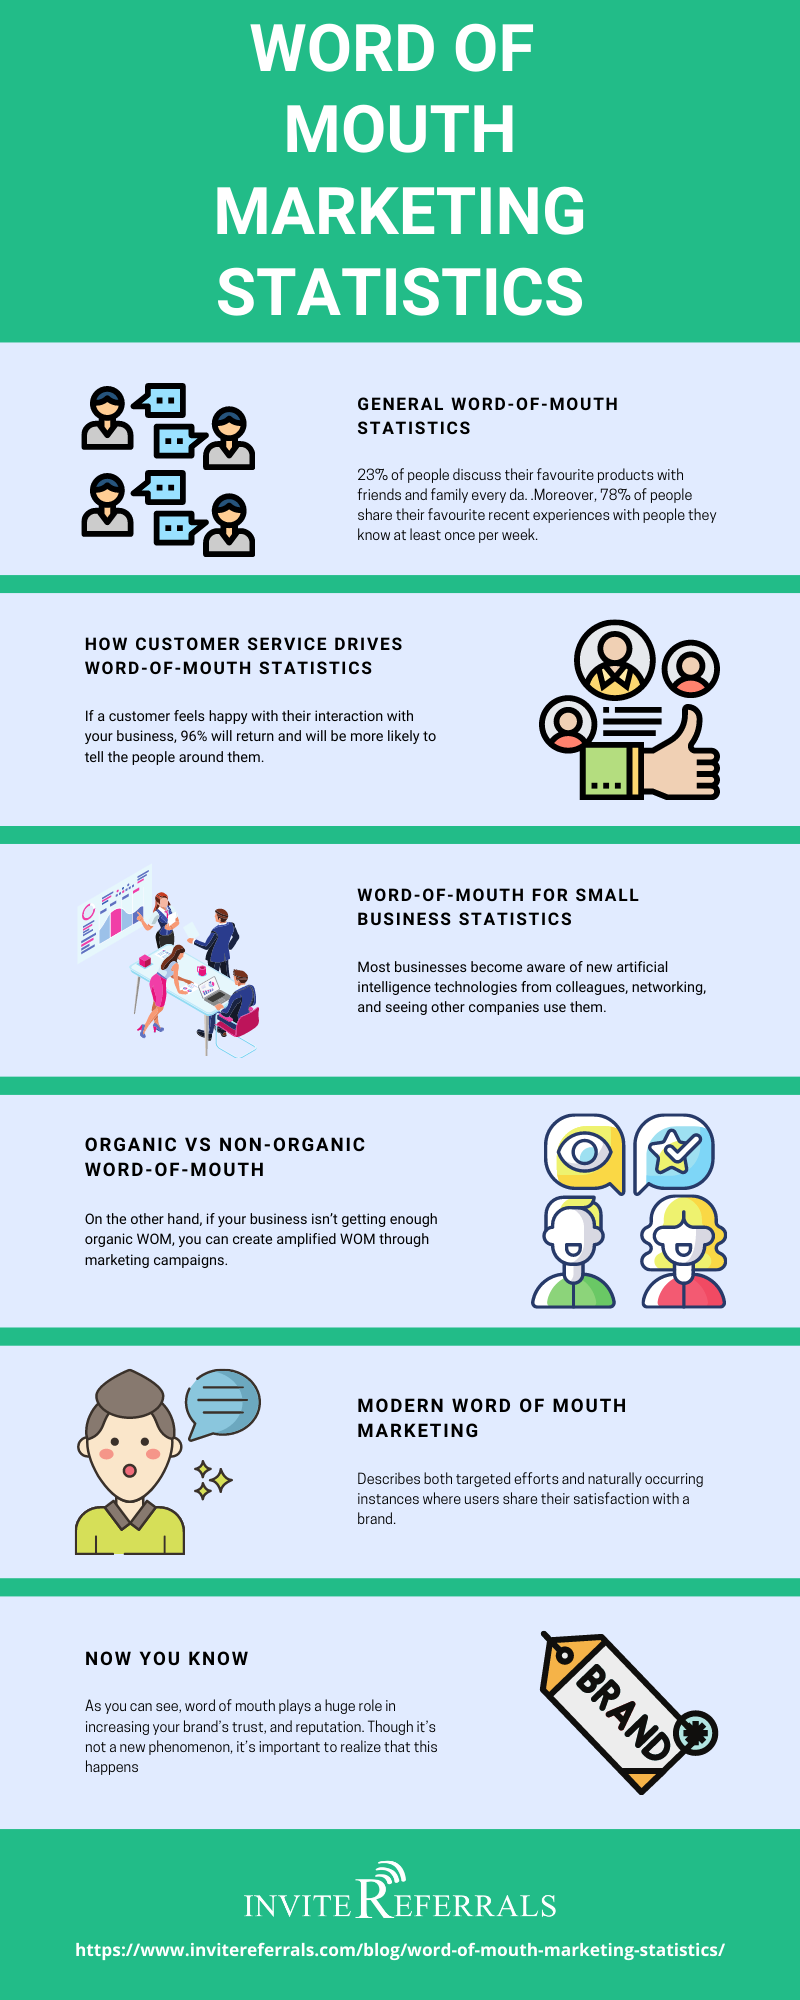 word of mouth statistics infographic